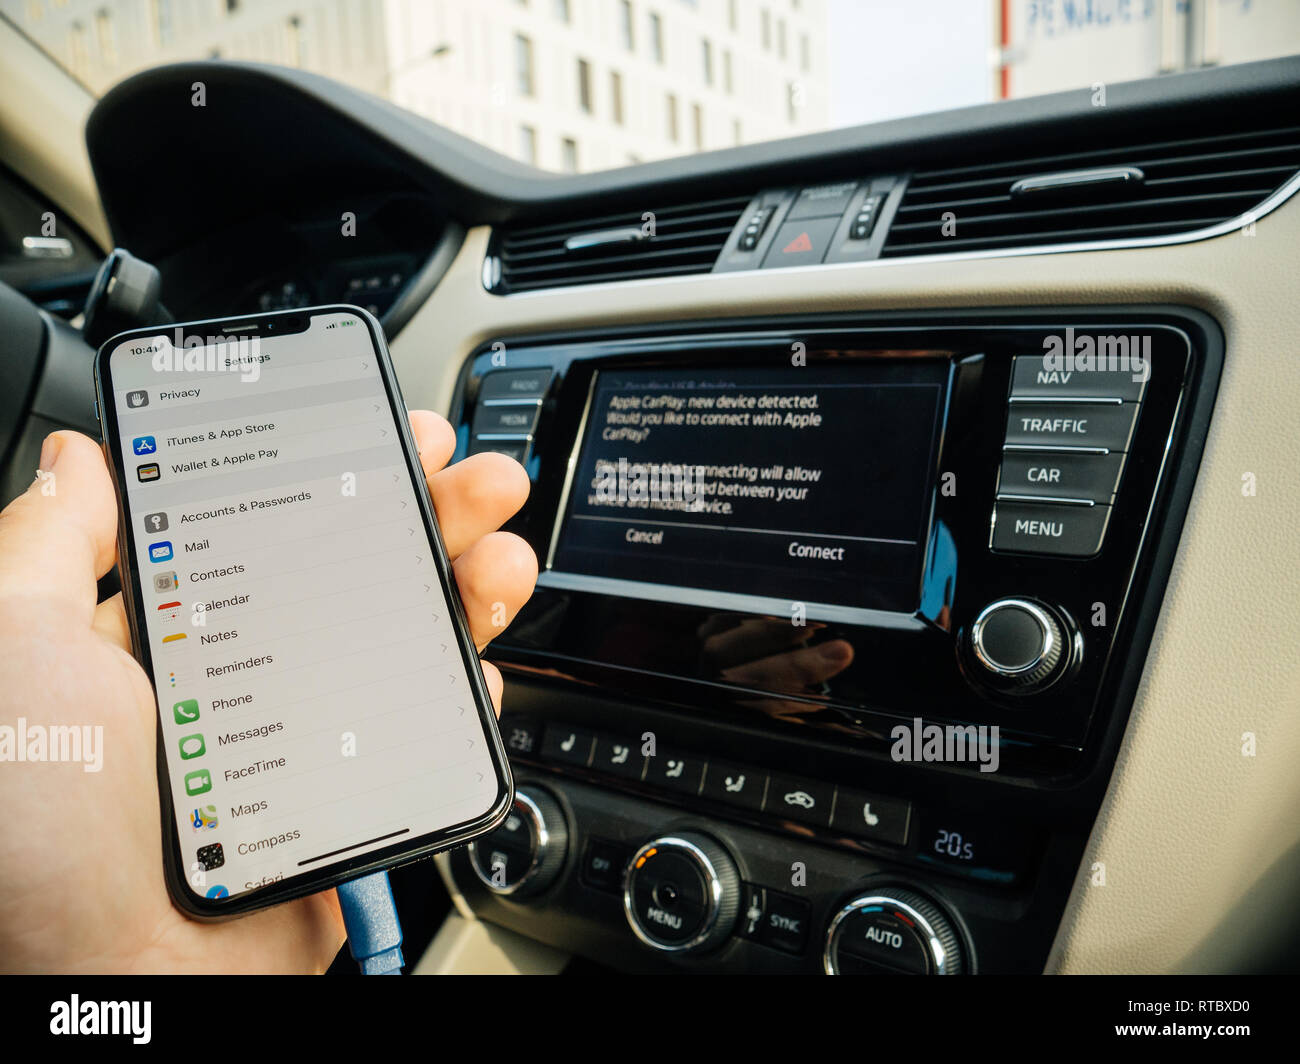 FRANKFURT, GERMANY - NOV 4, 2017: Man connecting his new iPhone X 10 to the navigation system of the car with CarPlay - message on GPS - new device detected  - Stock Image